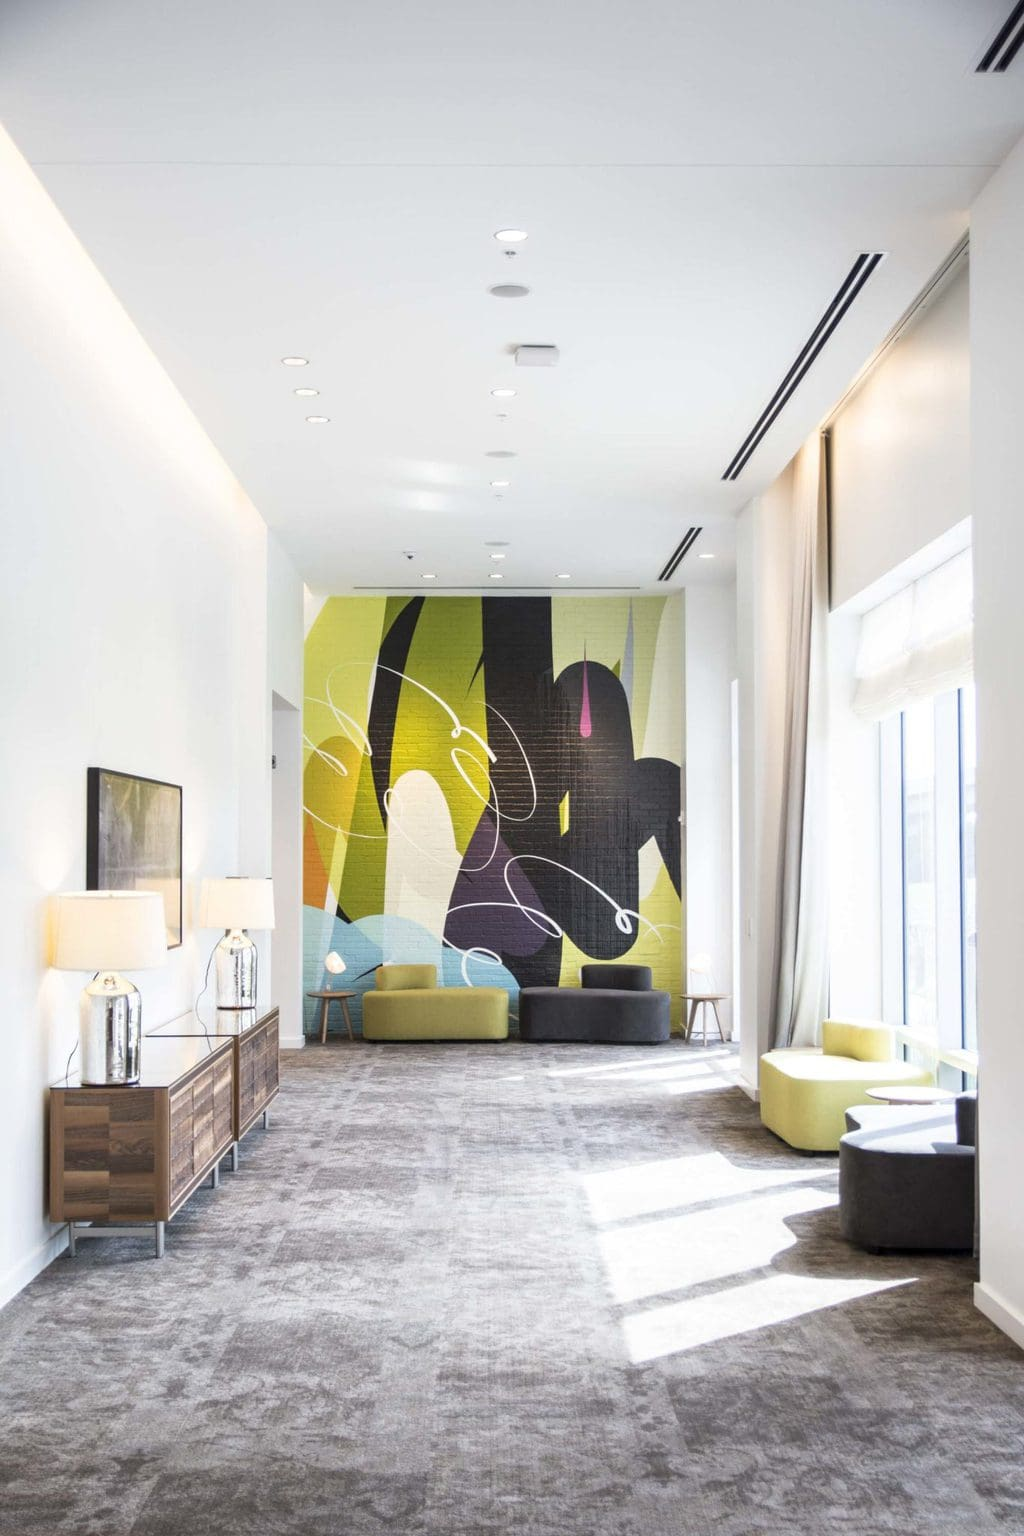 Bright and colorful hotel design with graphic mural at the Renaissance airport hotel on Thou Swell @thouswellblog